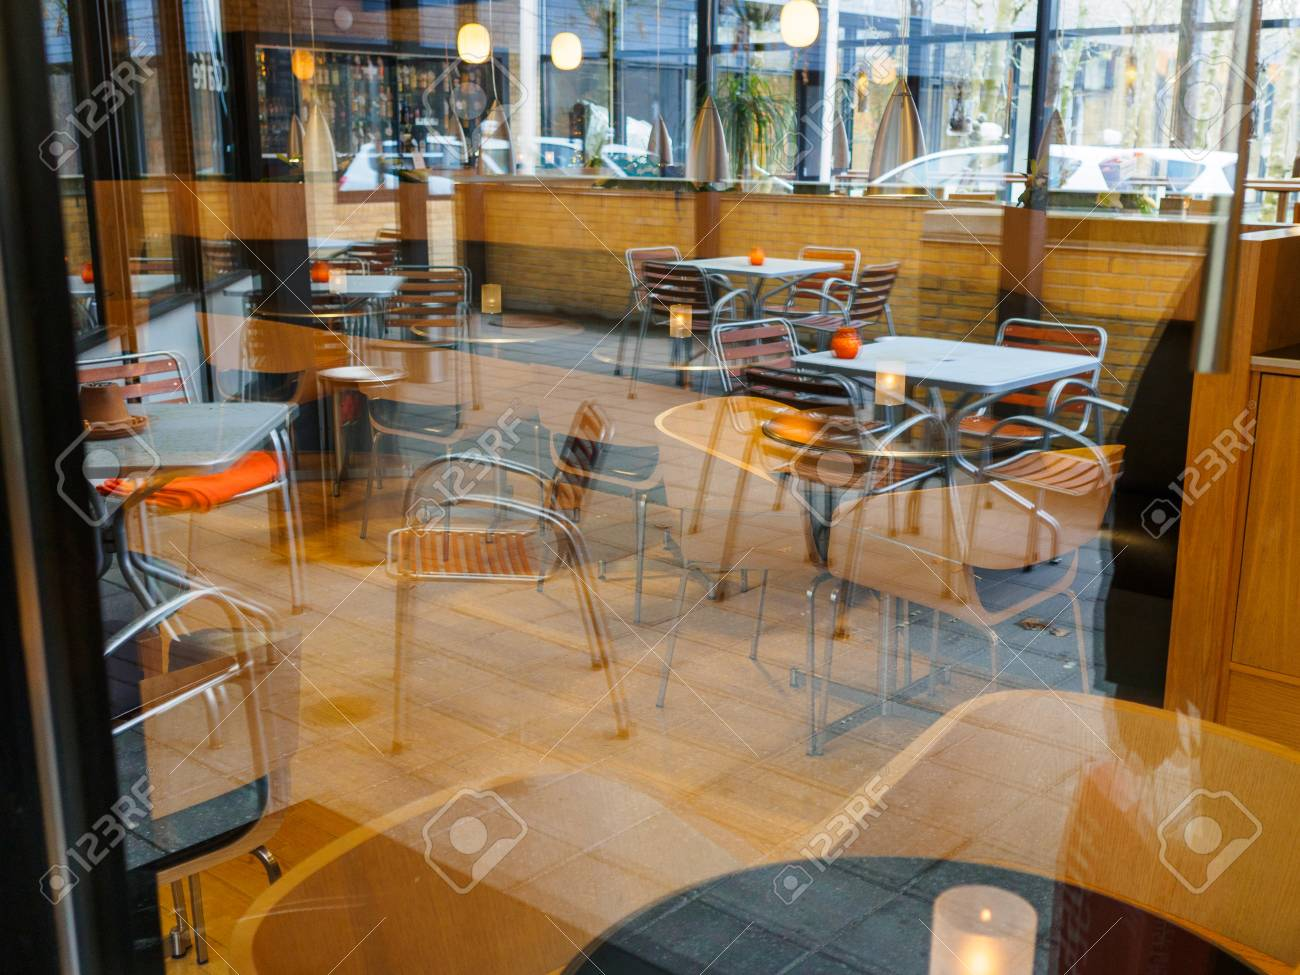 Modern Classical Design Coffee Shop Cafe Restaurant Interior Stock Photo Picture And Royalty Free Image Image 75036281